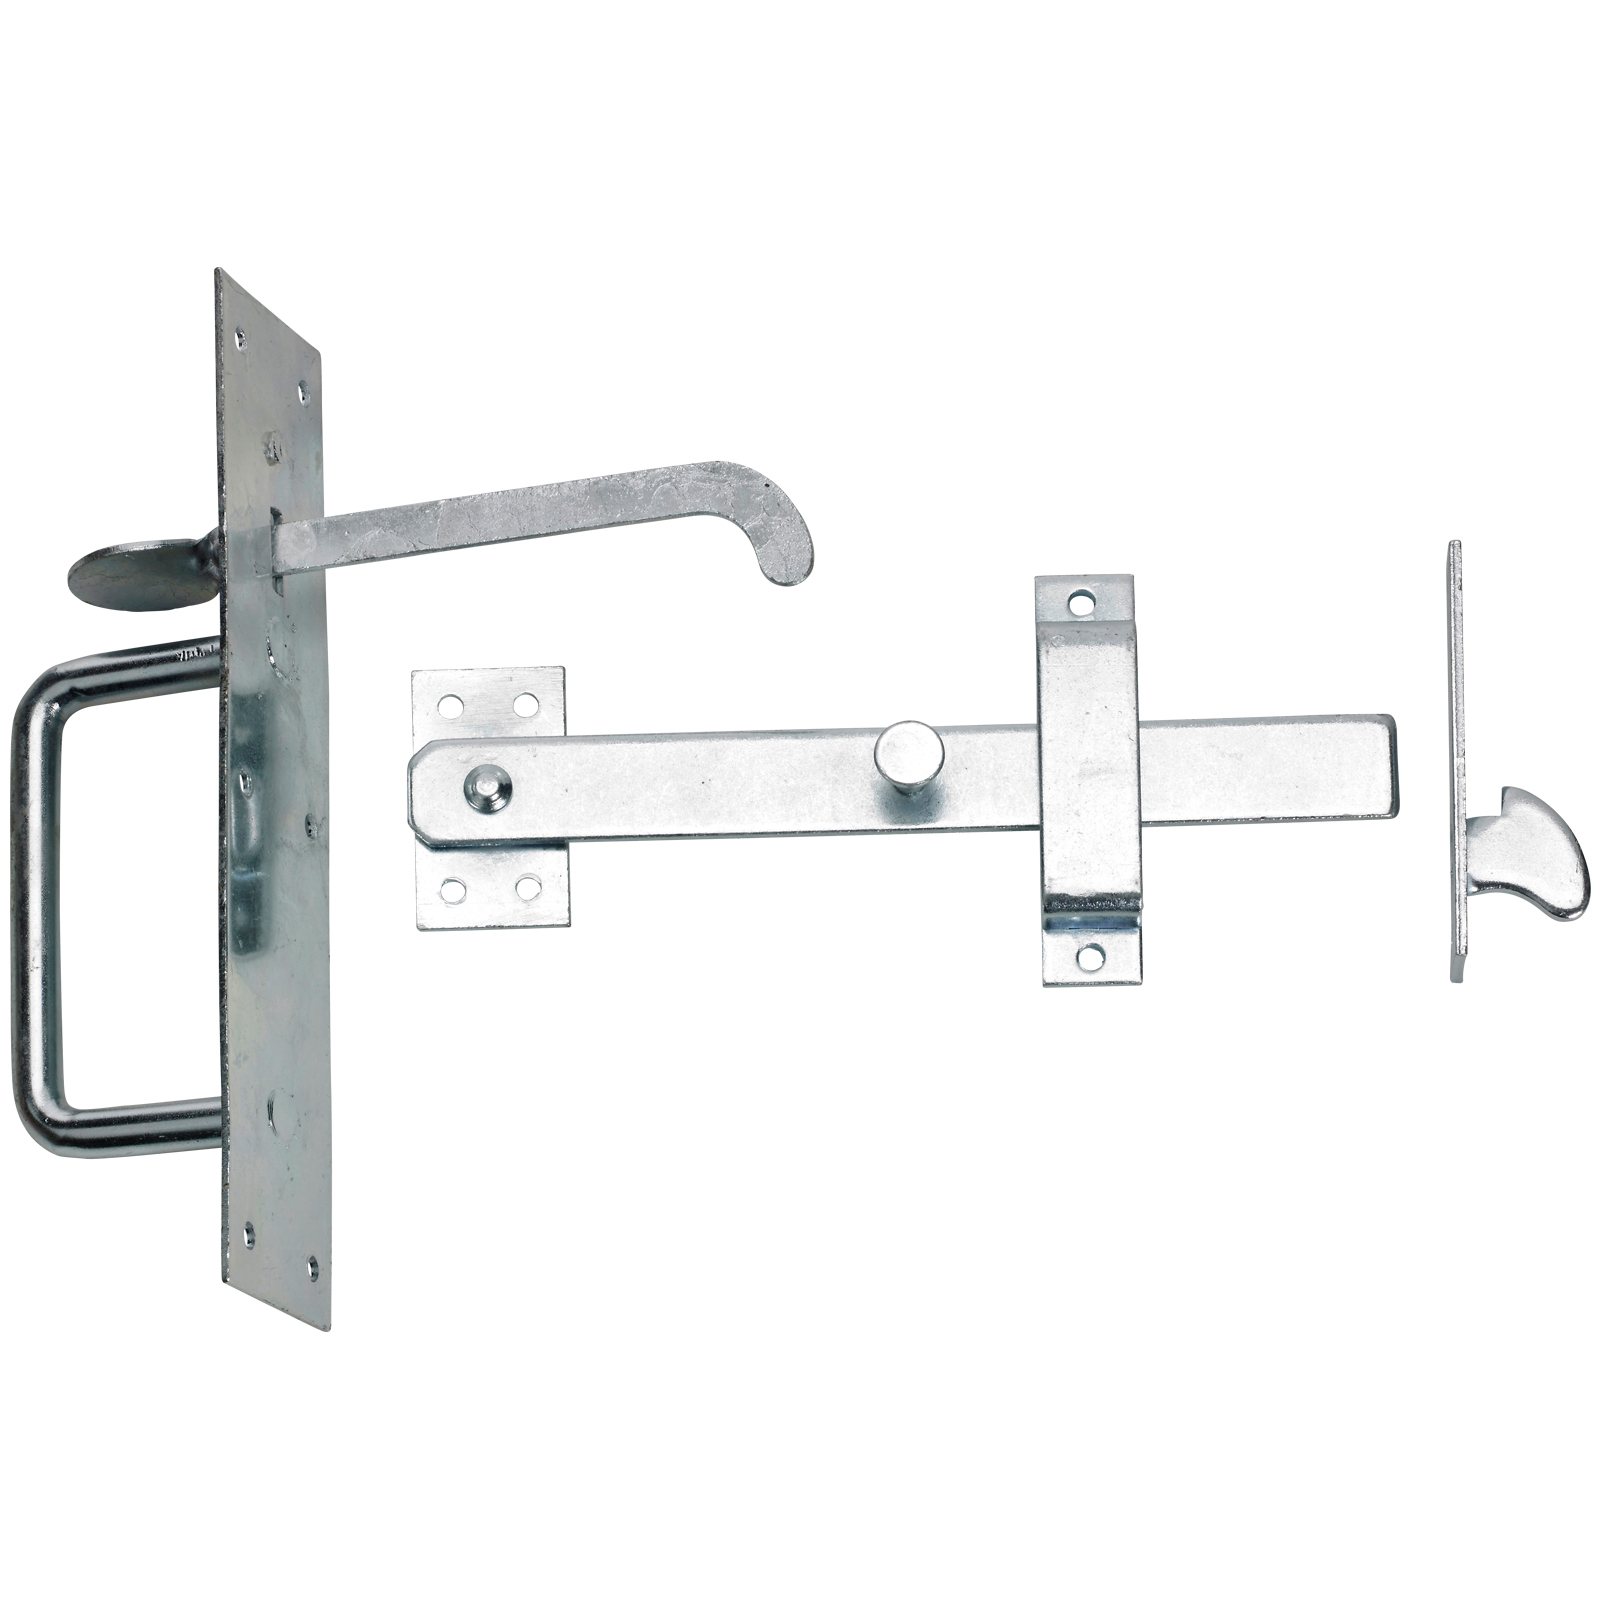 Suffolk latch perfect for keeping wooden gates closed.